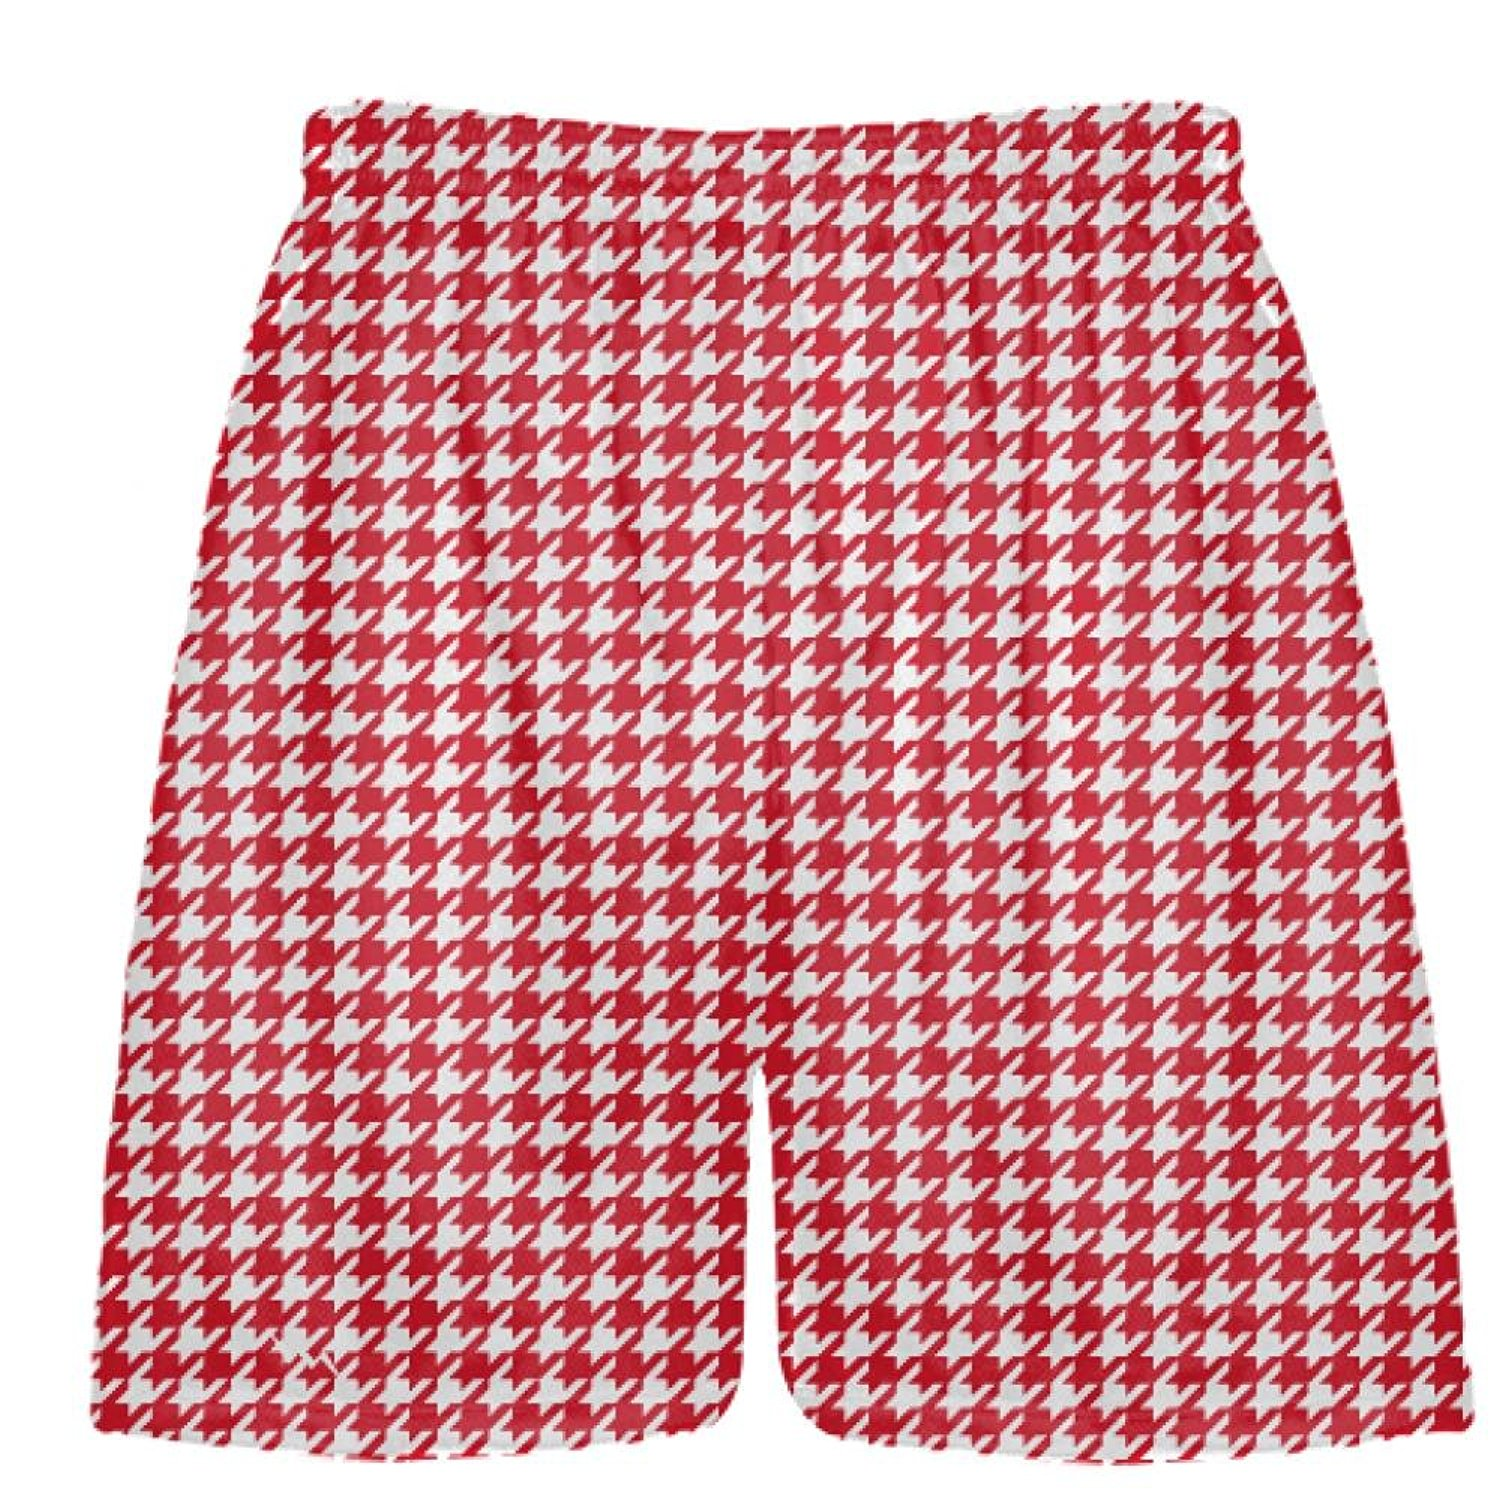 d429f112d8 Get Quotations · LightningWear Red Houndstooth Shorts - Sublimated Shorts -  Red White Custom Shorts - Sublimated Athletic Shorts